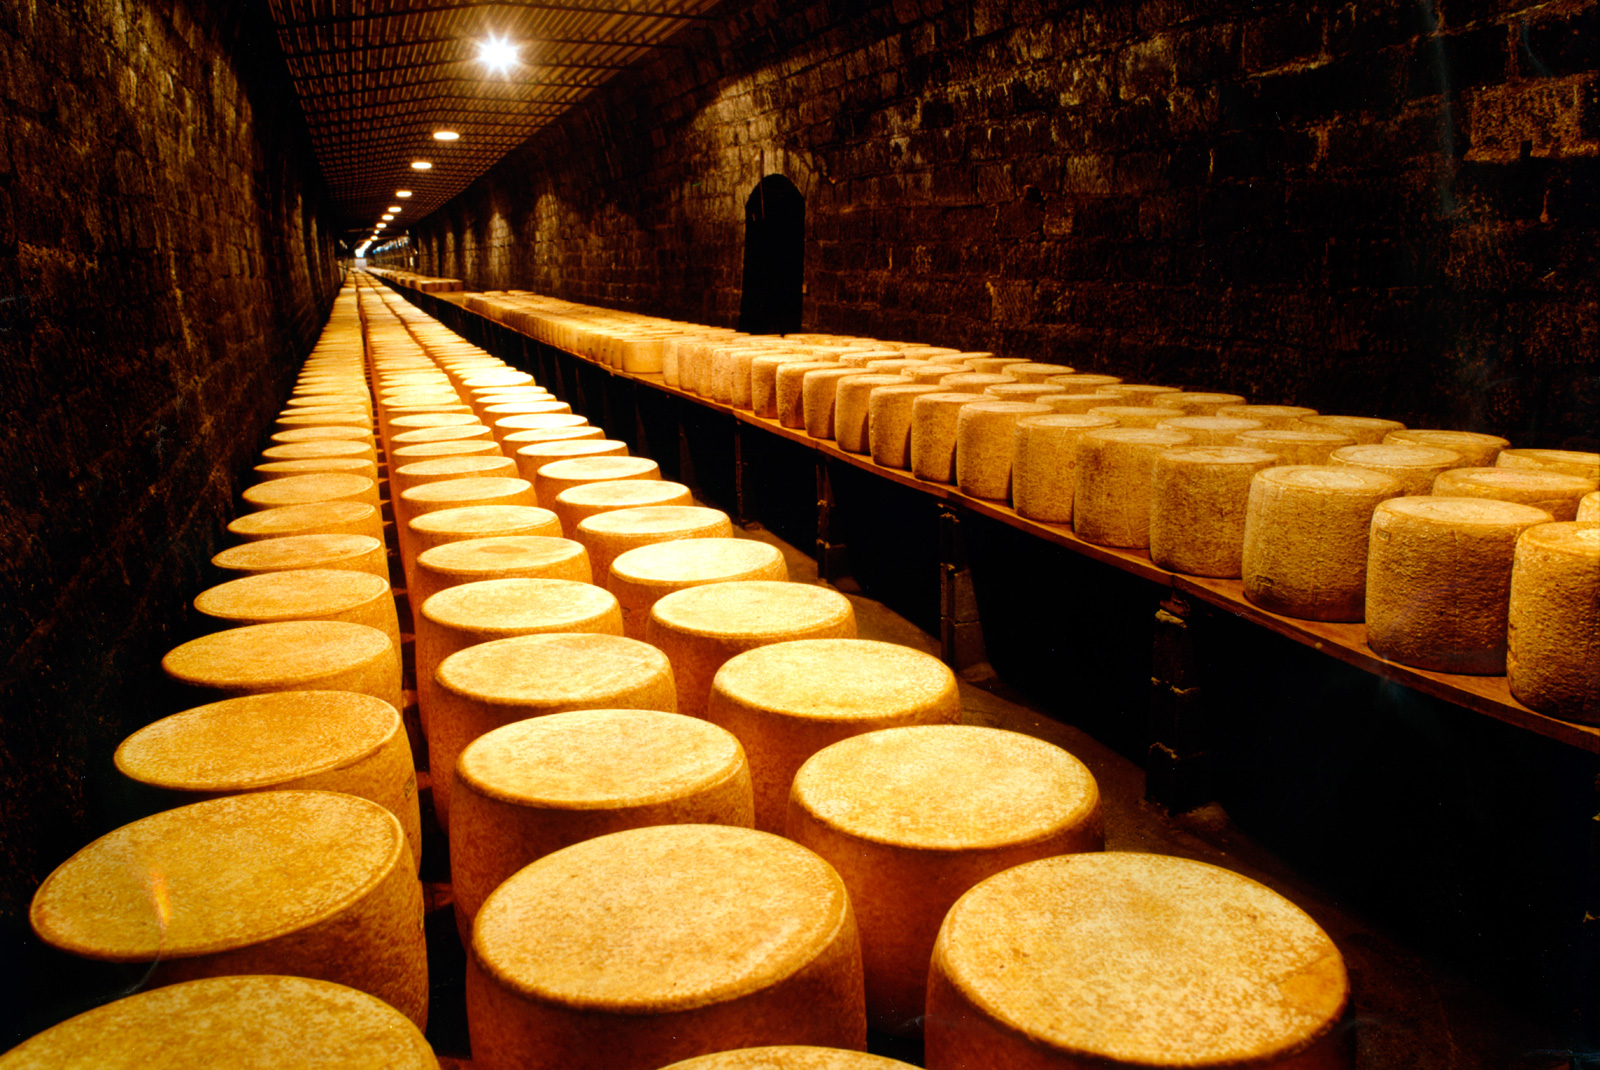 Ripening cellars with wheel of cheese rows.